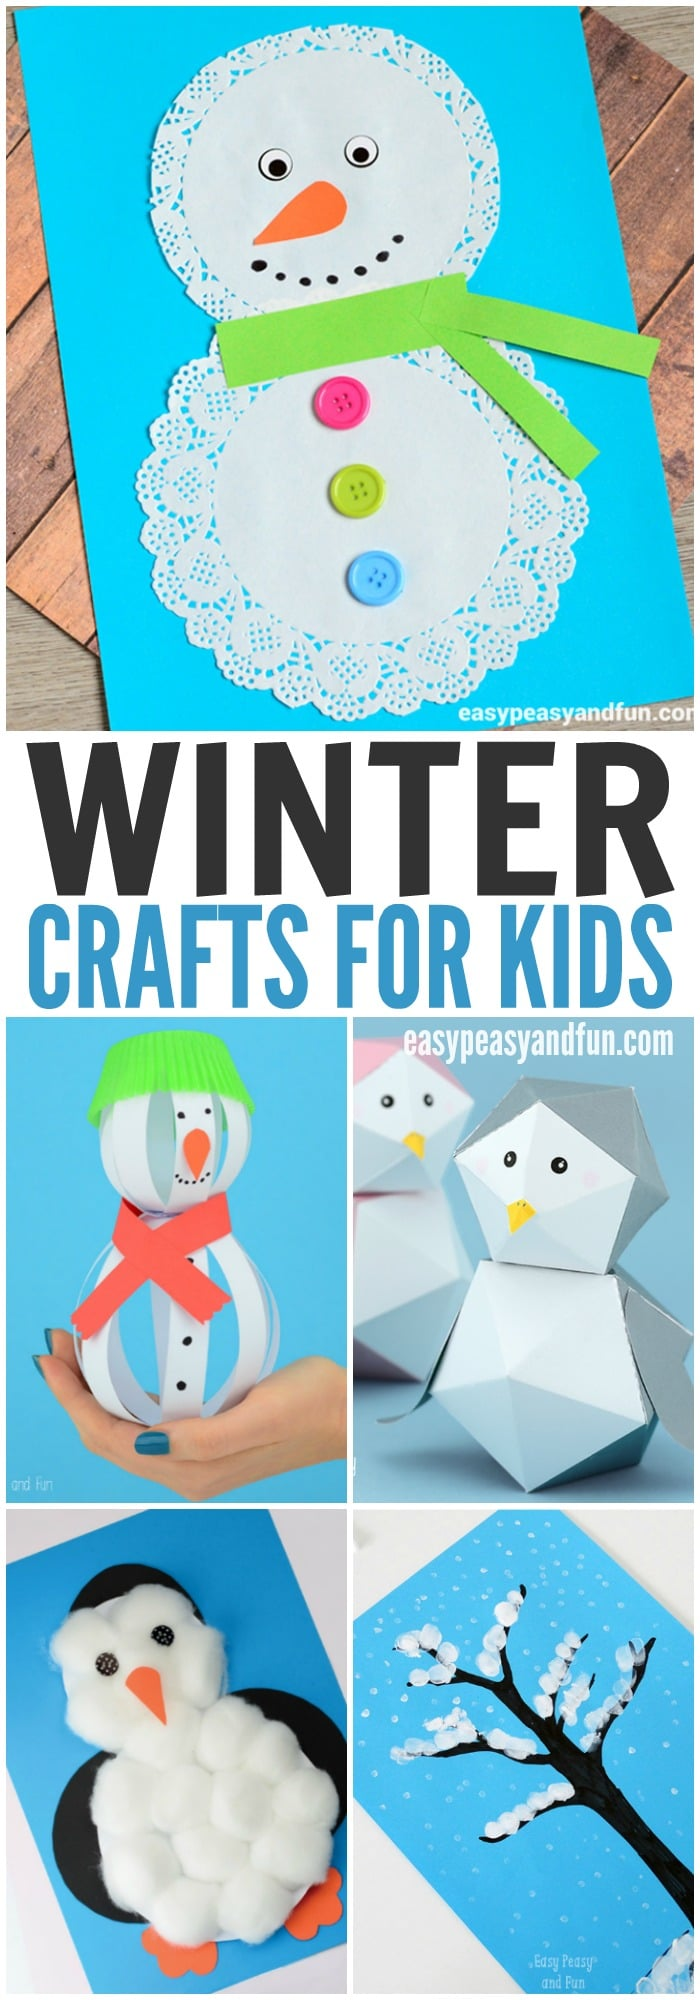 Art And Craft For Preschool Winter Crafts For Kids To Make Fun Art And Craft Ideas For All